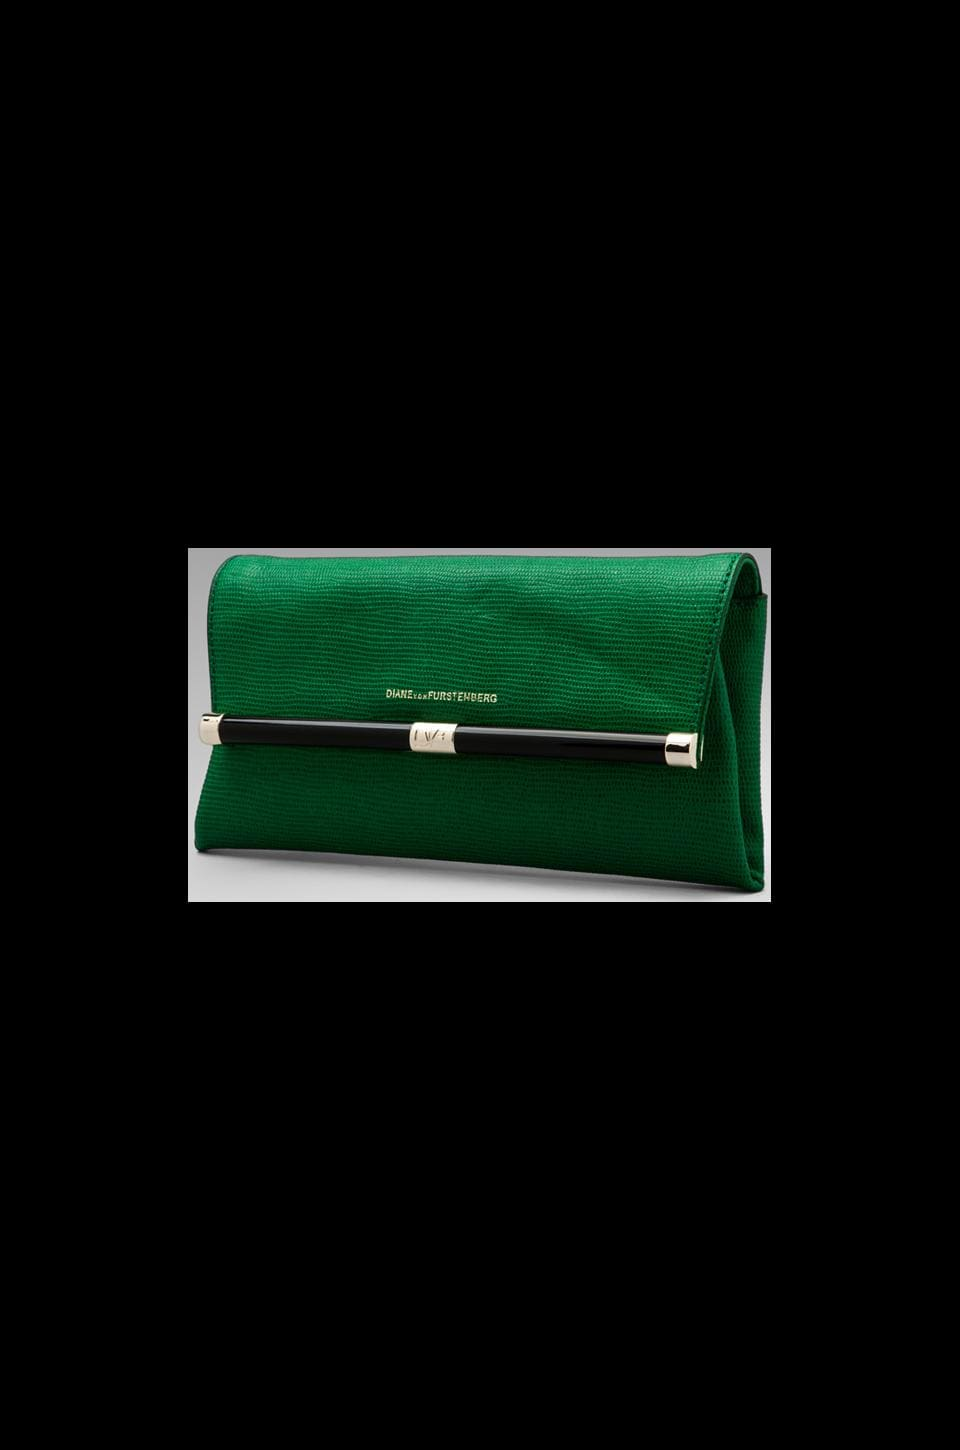 Diane von Furstenberg Embossed Lizard Envelope Clutch in Fern Green